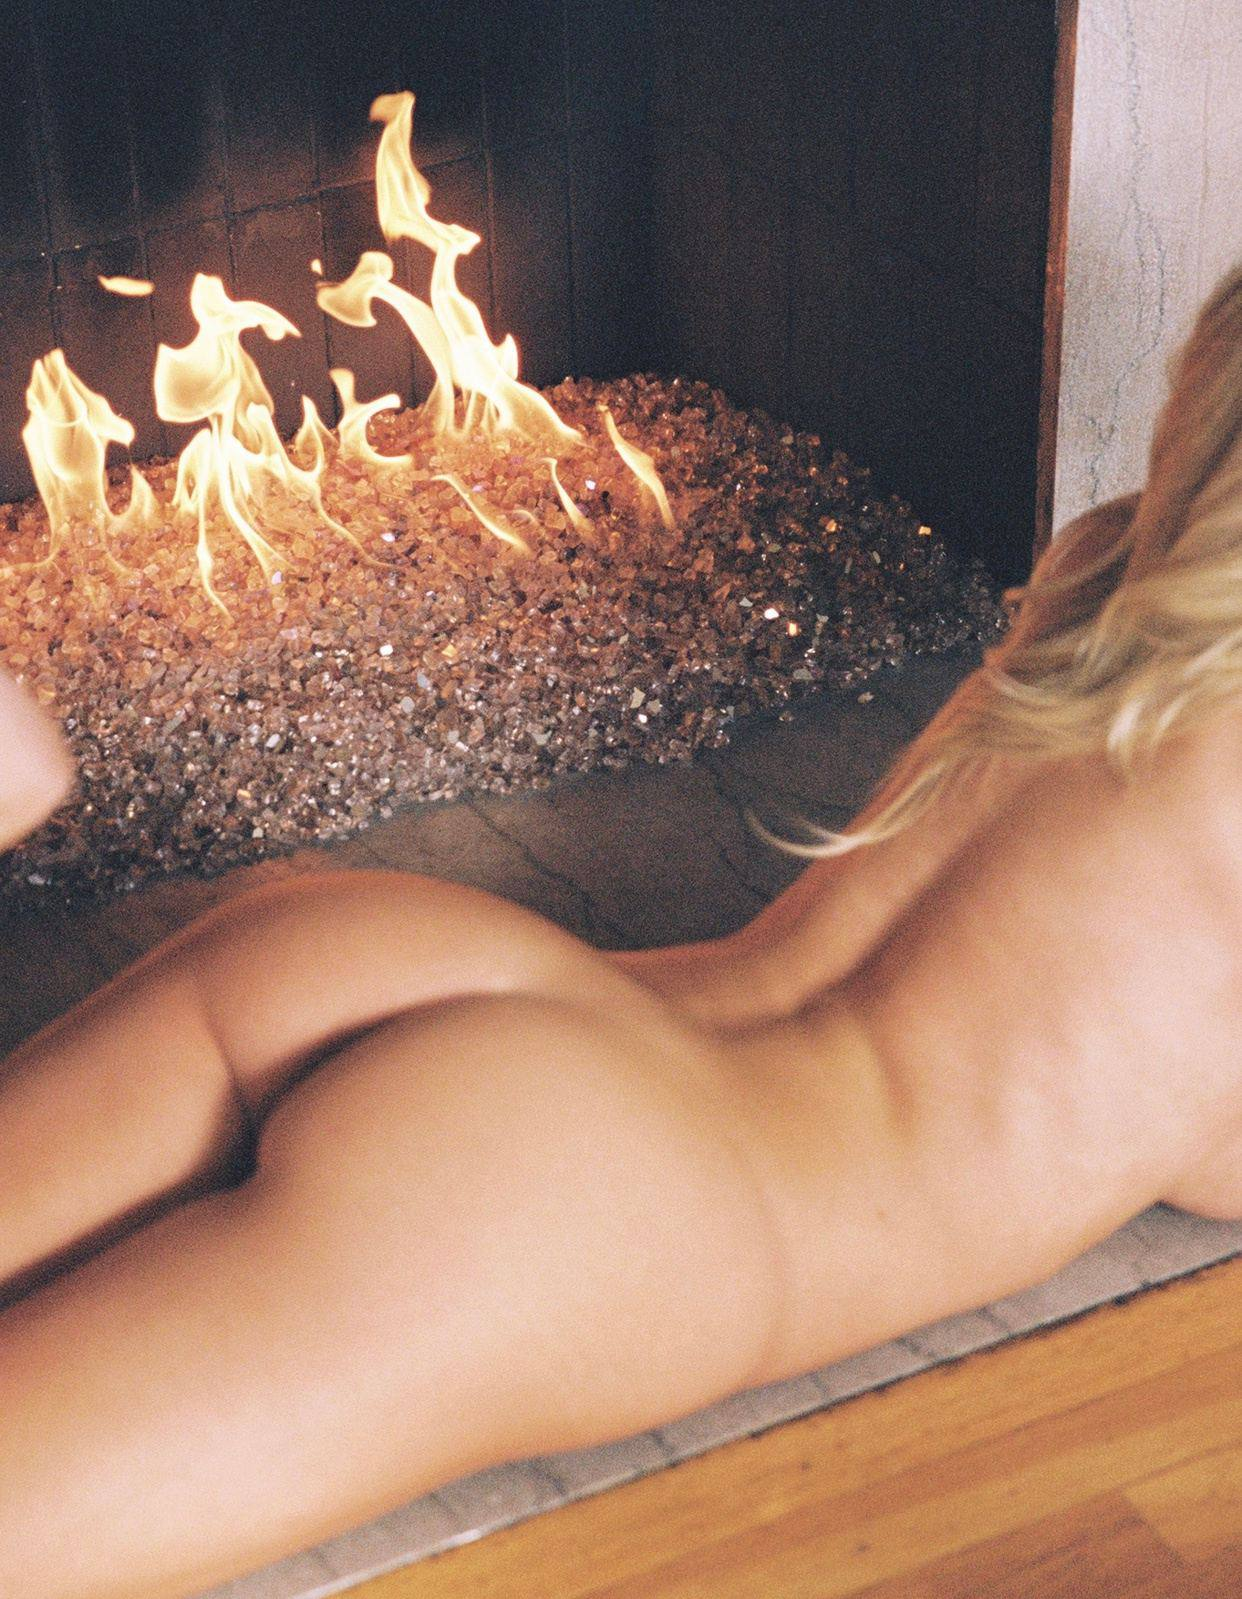 Hannah Palmer – Beautiful Body In Full Frontal Naked Photoshoot (censored) (nsfw) 0006